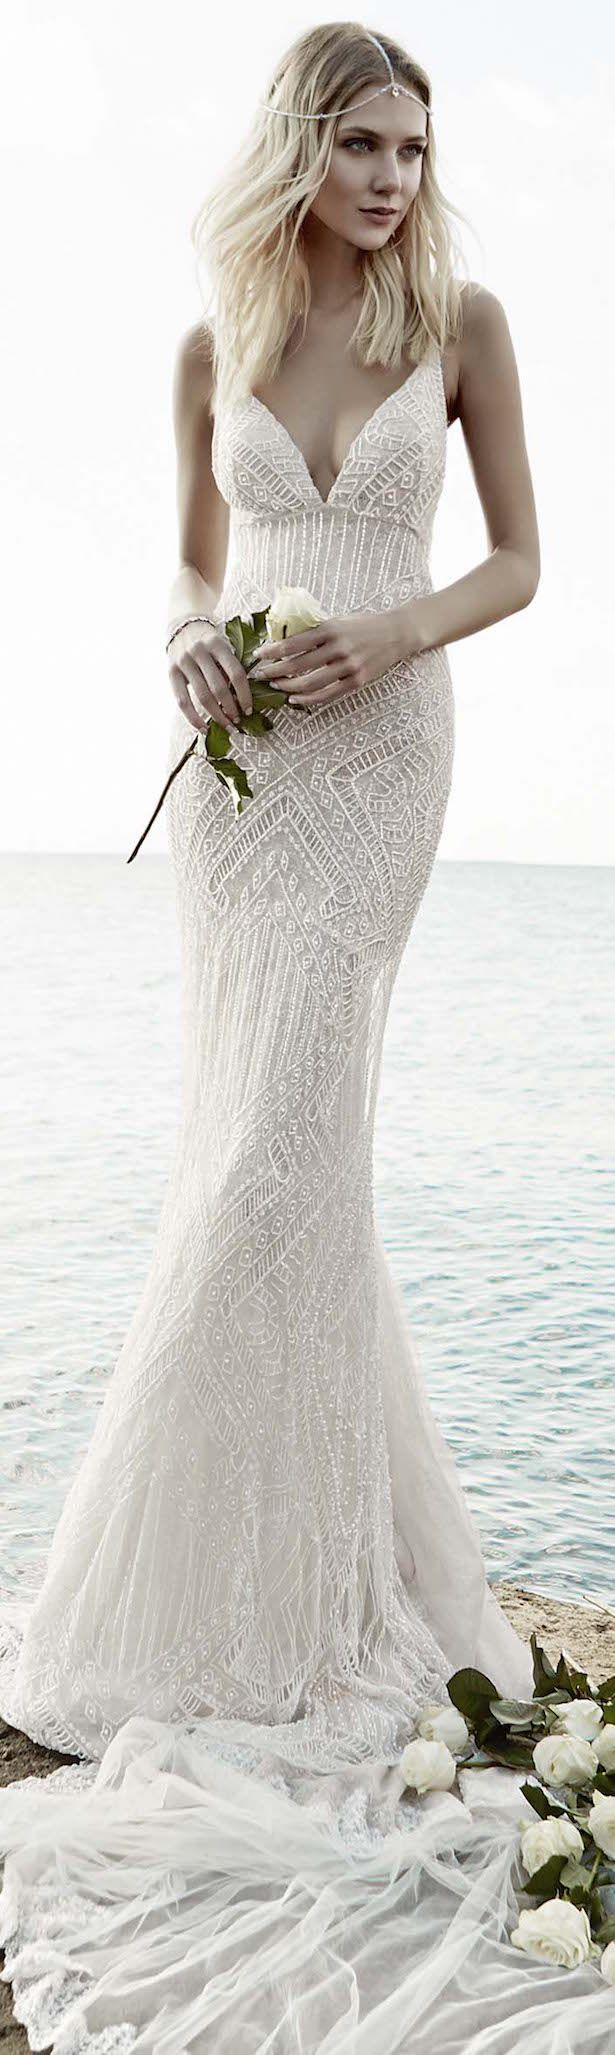 bohemian beach wedding beachy wedding dresses Victoria KyriaKides Bridal Fall Floral Constellations Vintage Lace Wedding DressesBeach